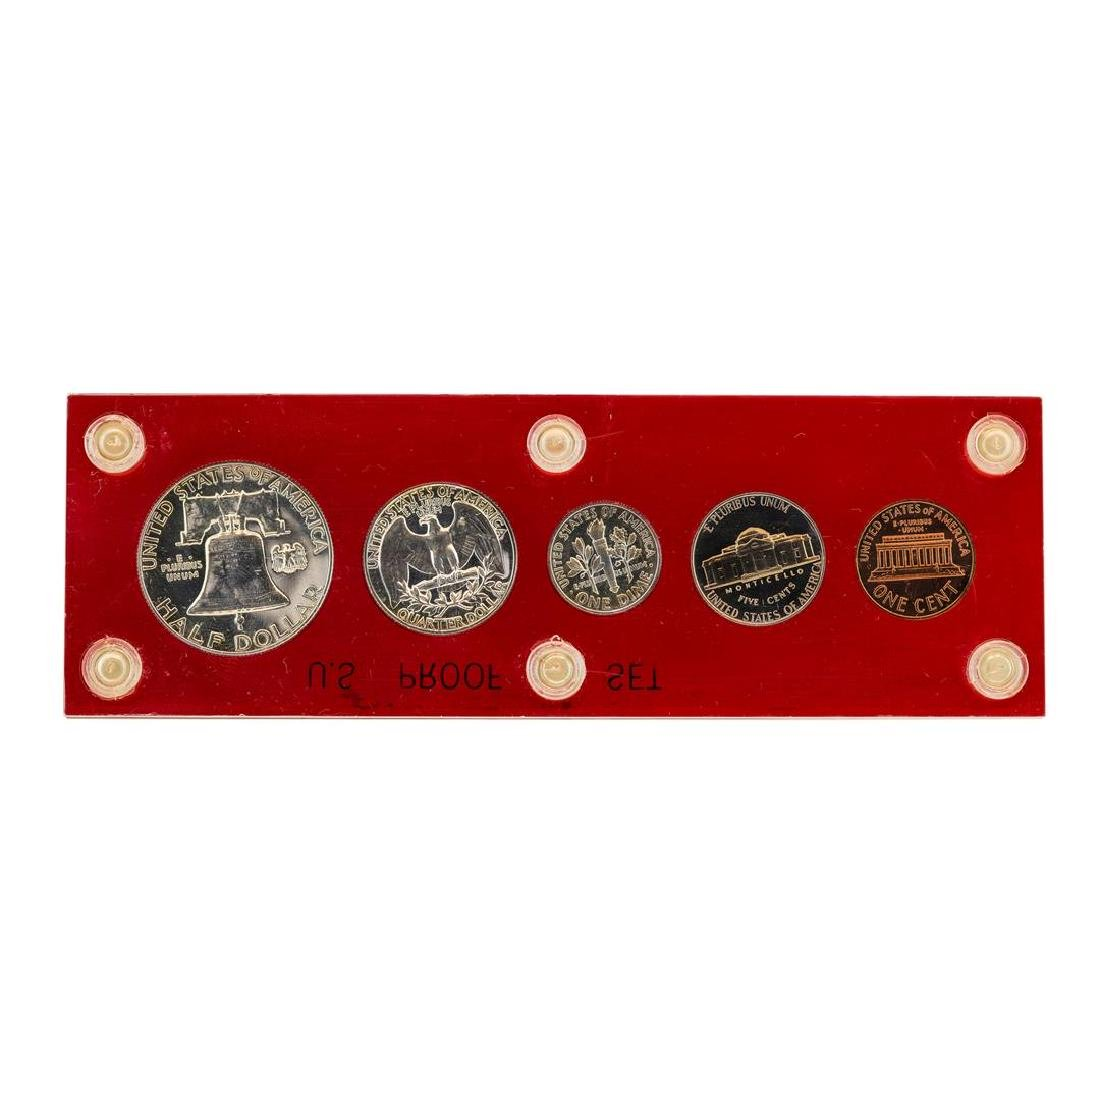 1963 (5) Coin Proof Set - 2